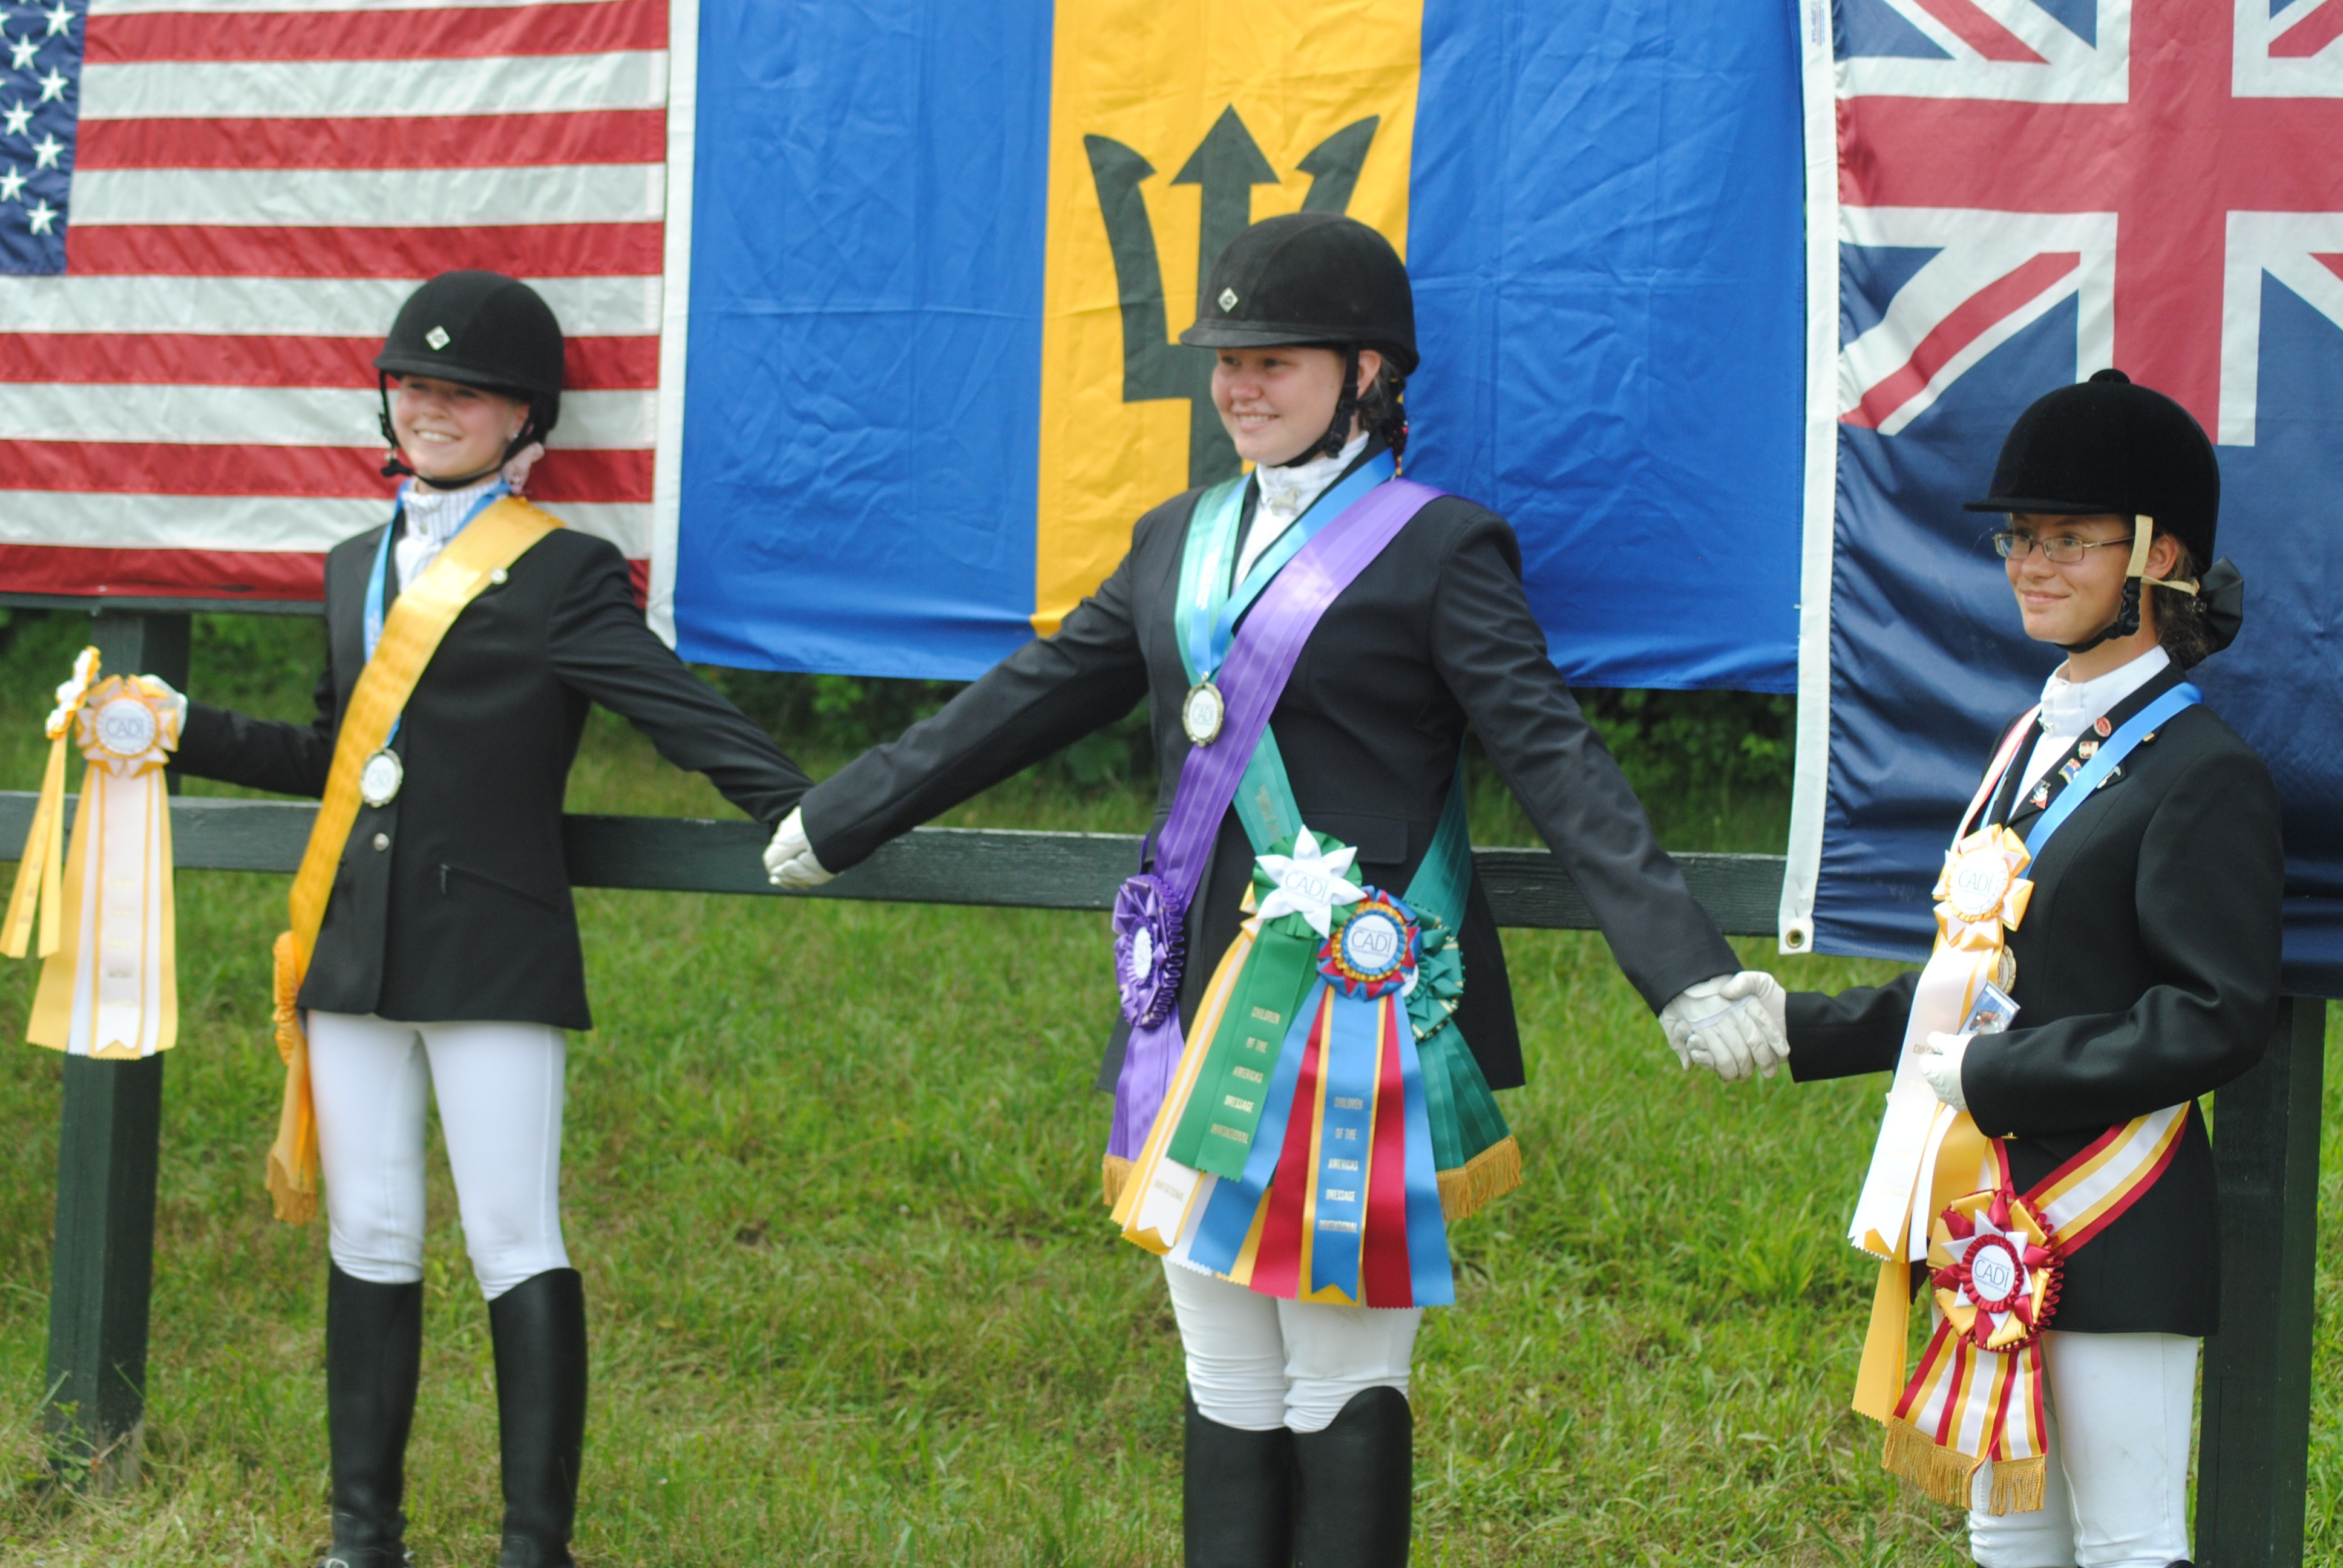 From left to right, Caroline McConnell of the USA, Kenzie Manning of Barbados and Anja van Genderen of the Cayman Islands celebrate their new friendship and third place finish in the team competition. While CADI is a competition, one of the big goals is for the riders to learn about one another's cultures.